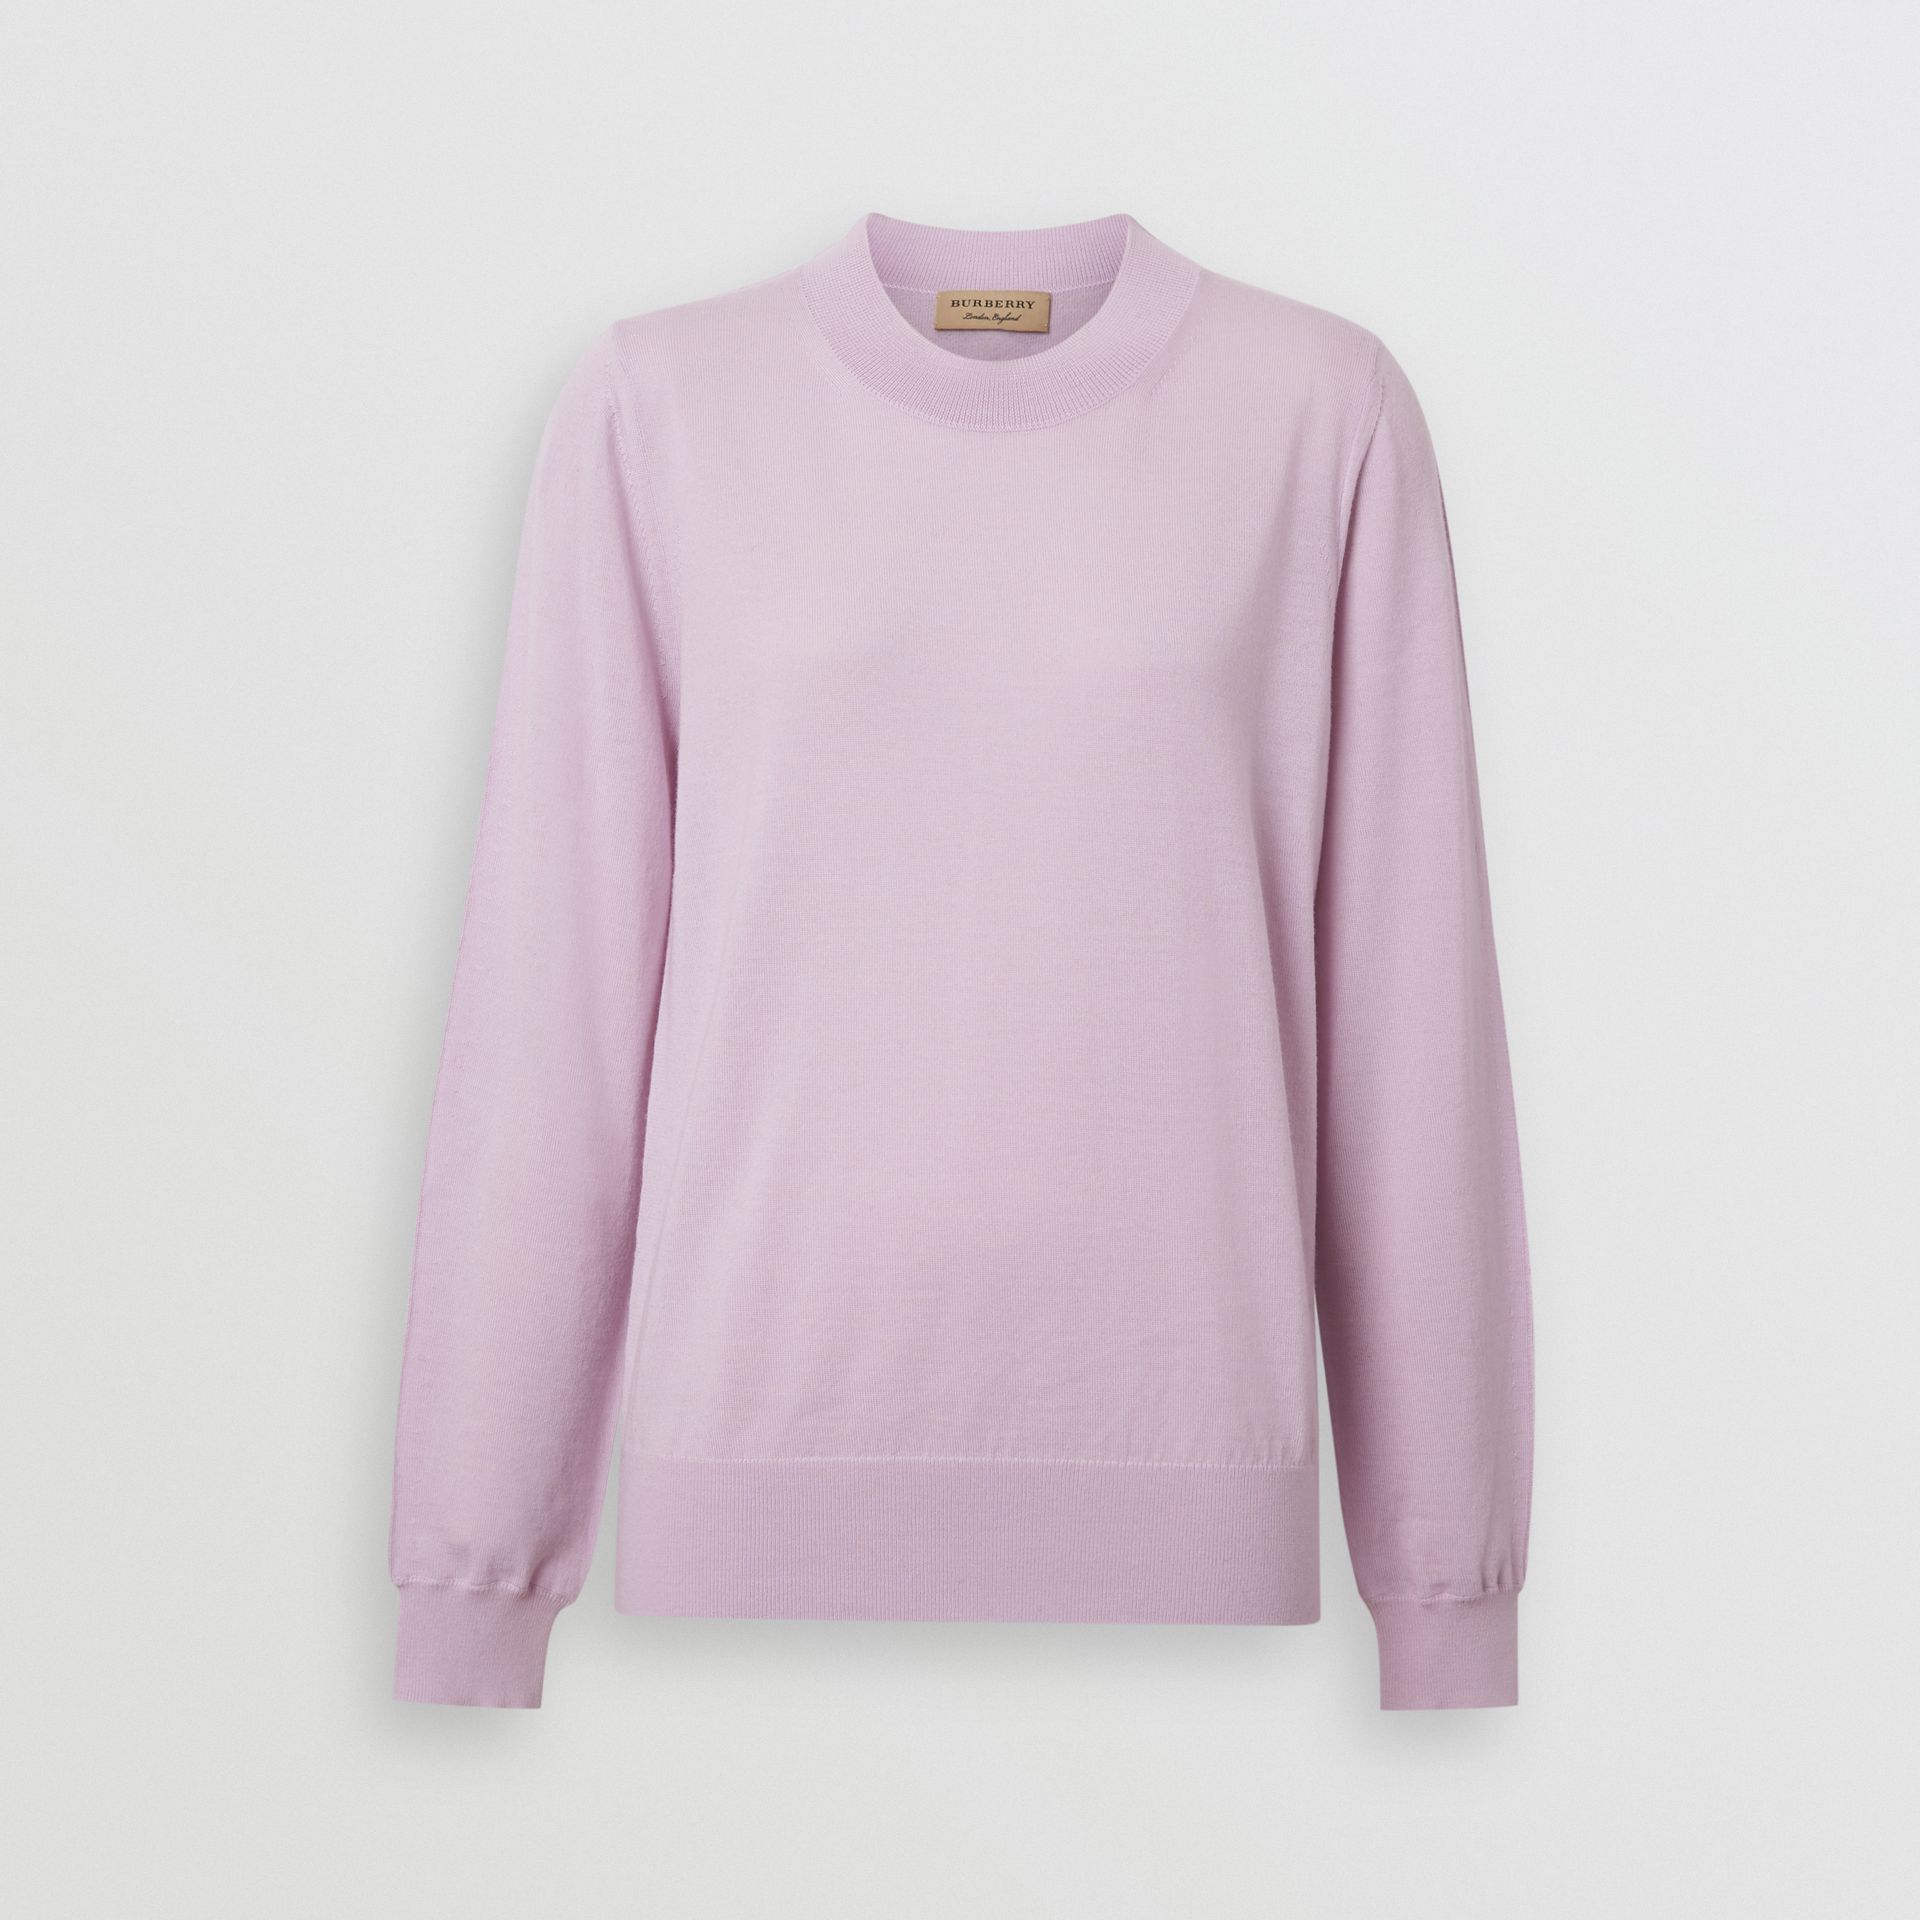 Logo Detail Merino Wool Sweater in Pale Heather - Women | Burberry Australia - gallery image 3